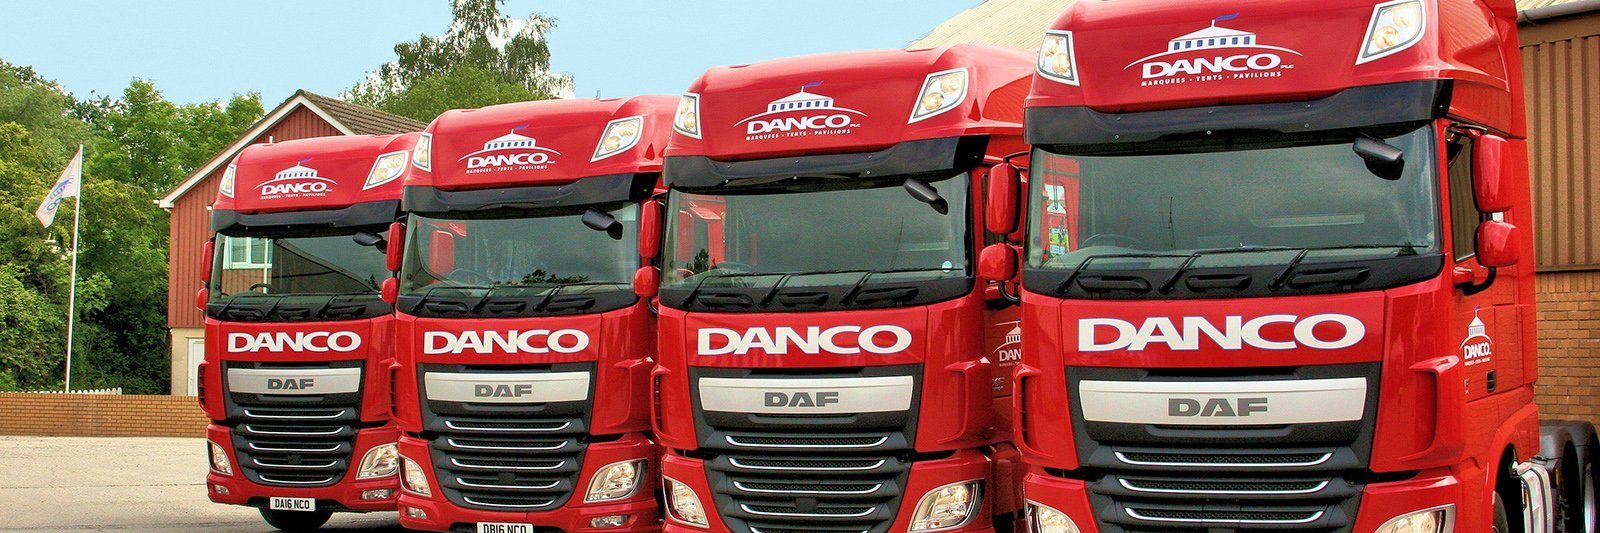 Danco DAF Vehicles